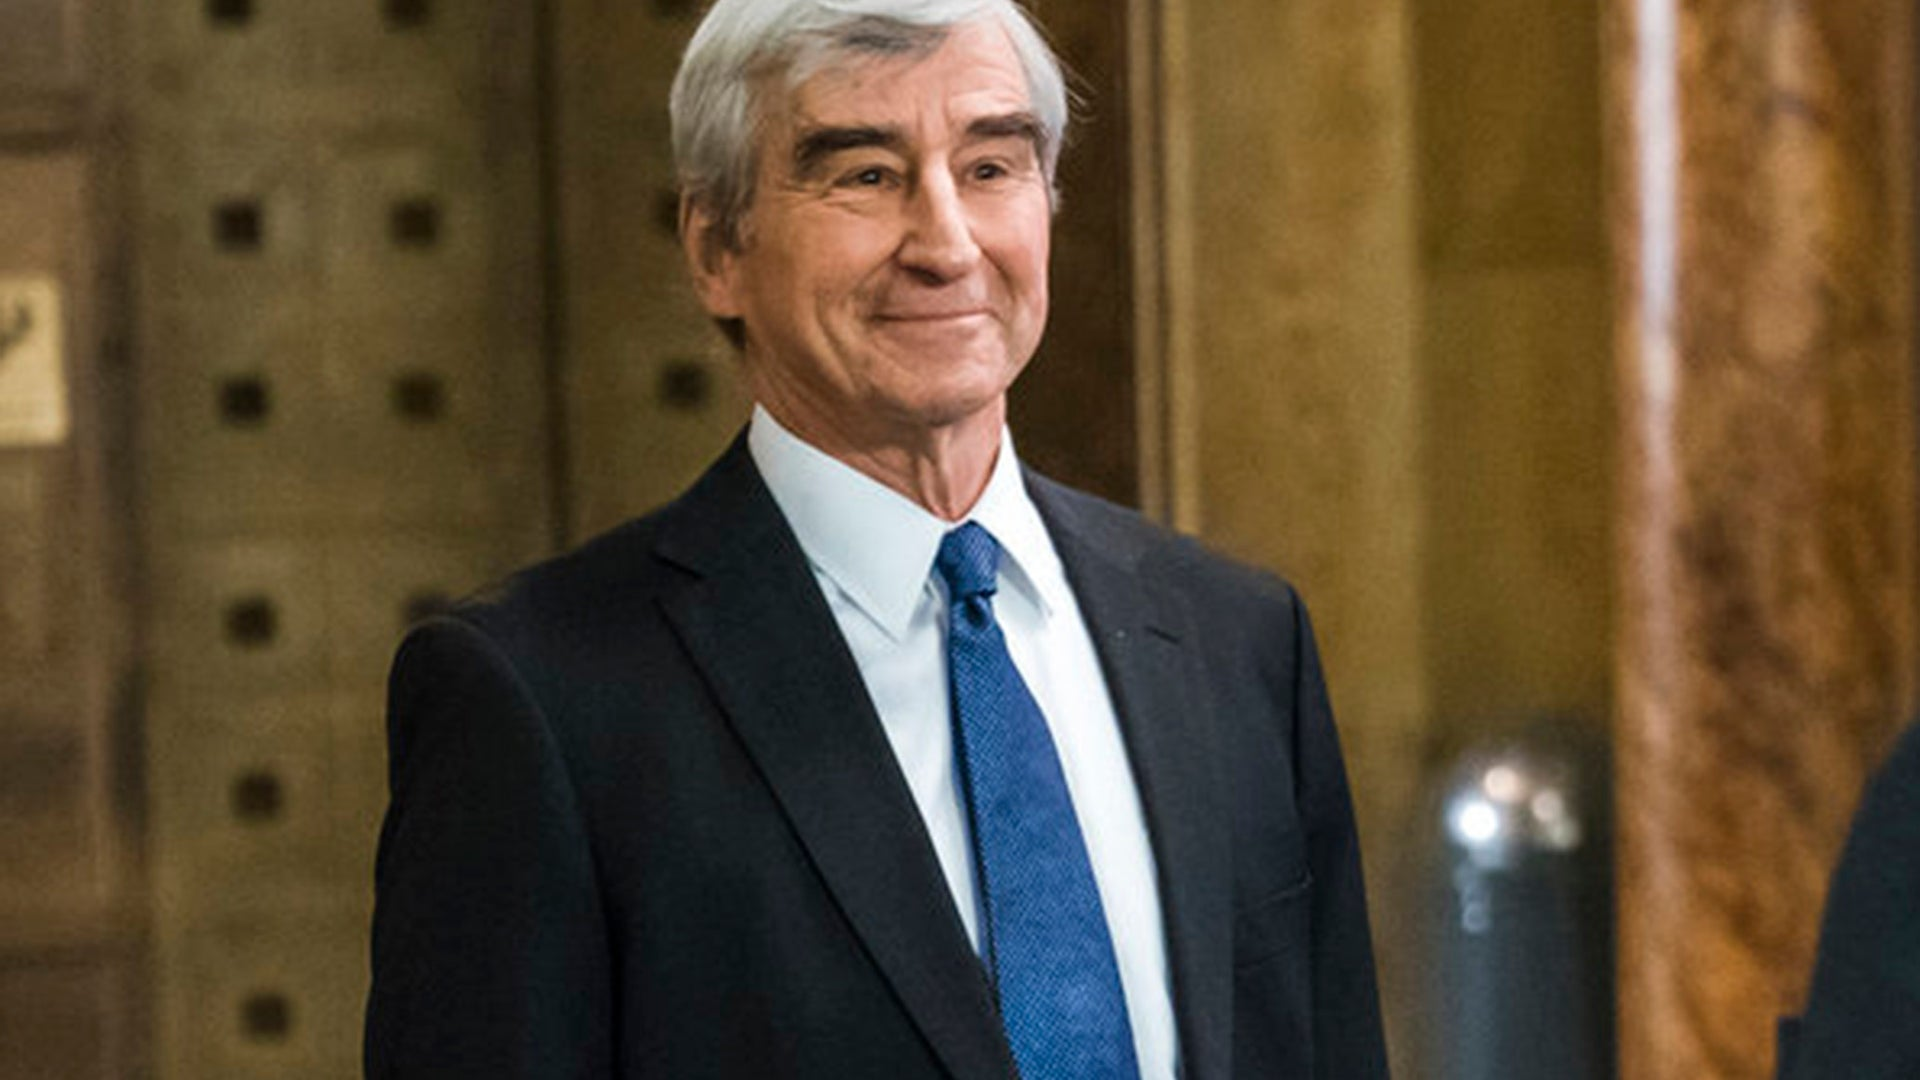 Sam Waterston, Law & Order: Special Victims Unit